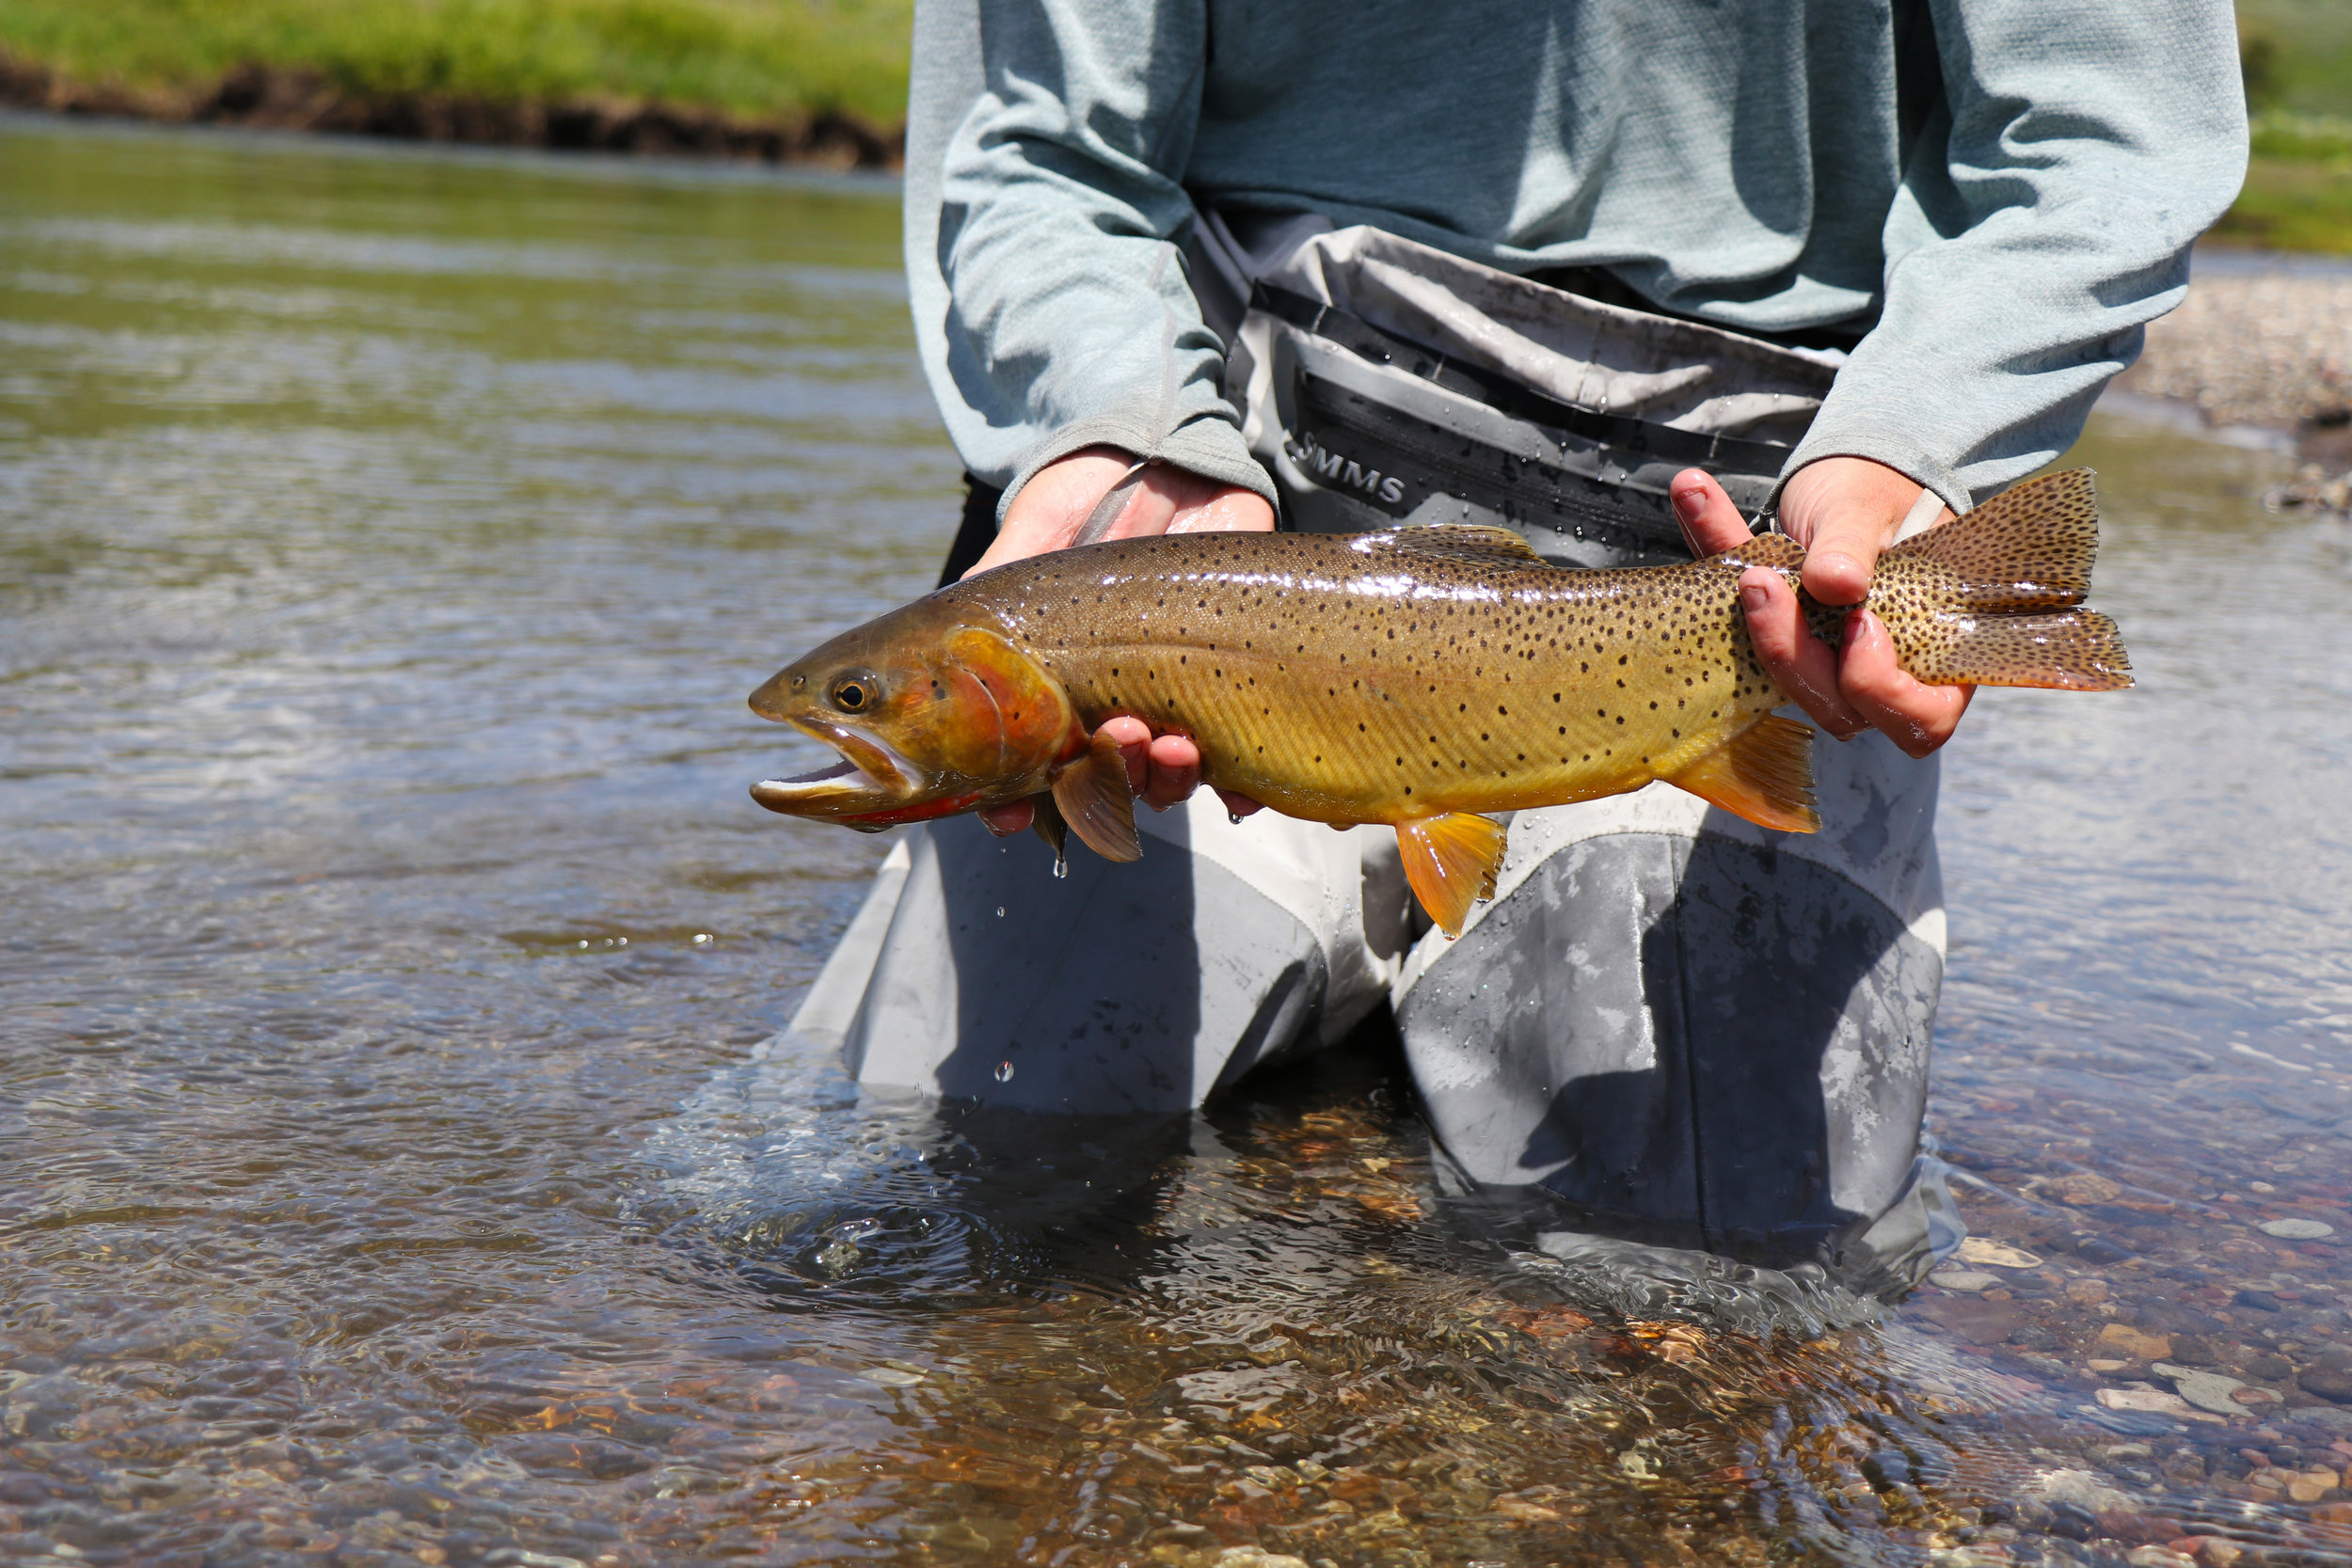 Matt holds a beautiful Slough Creek cutty, his first on day 2.